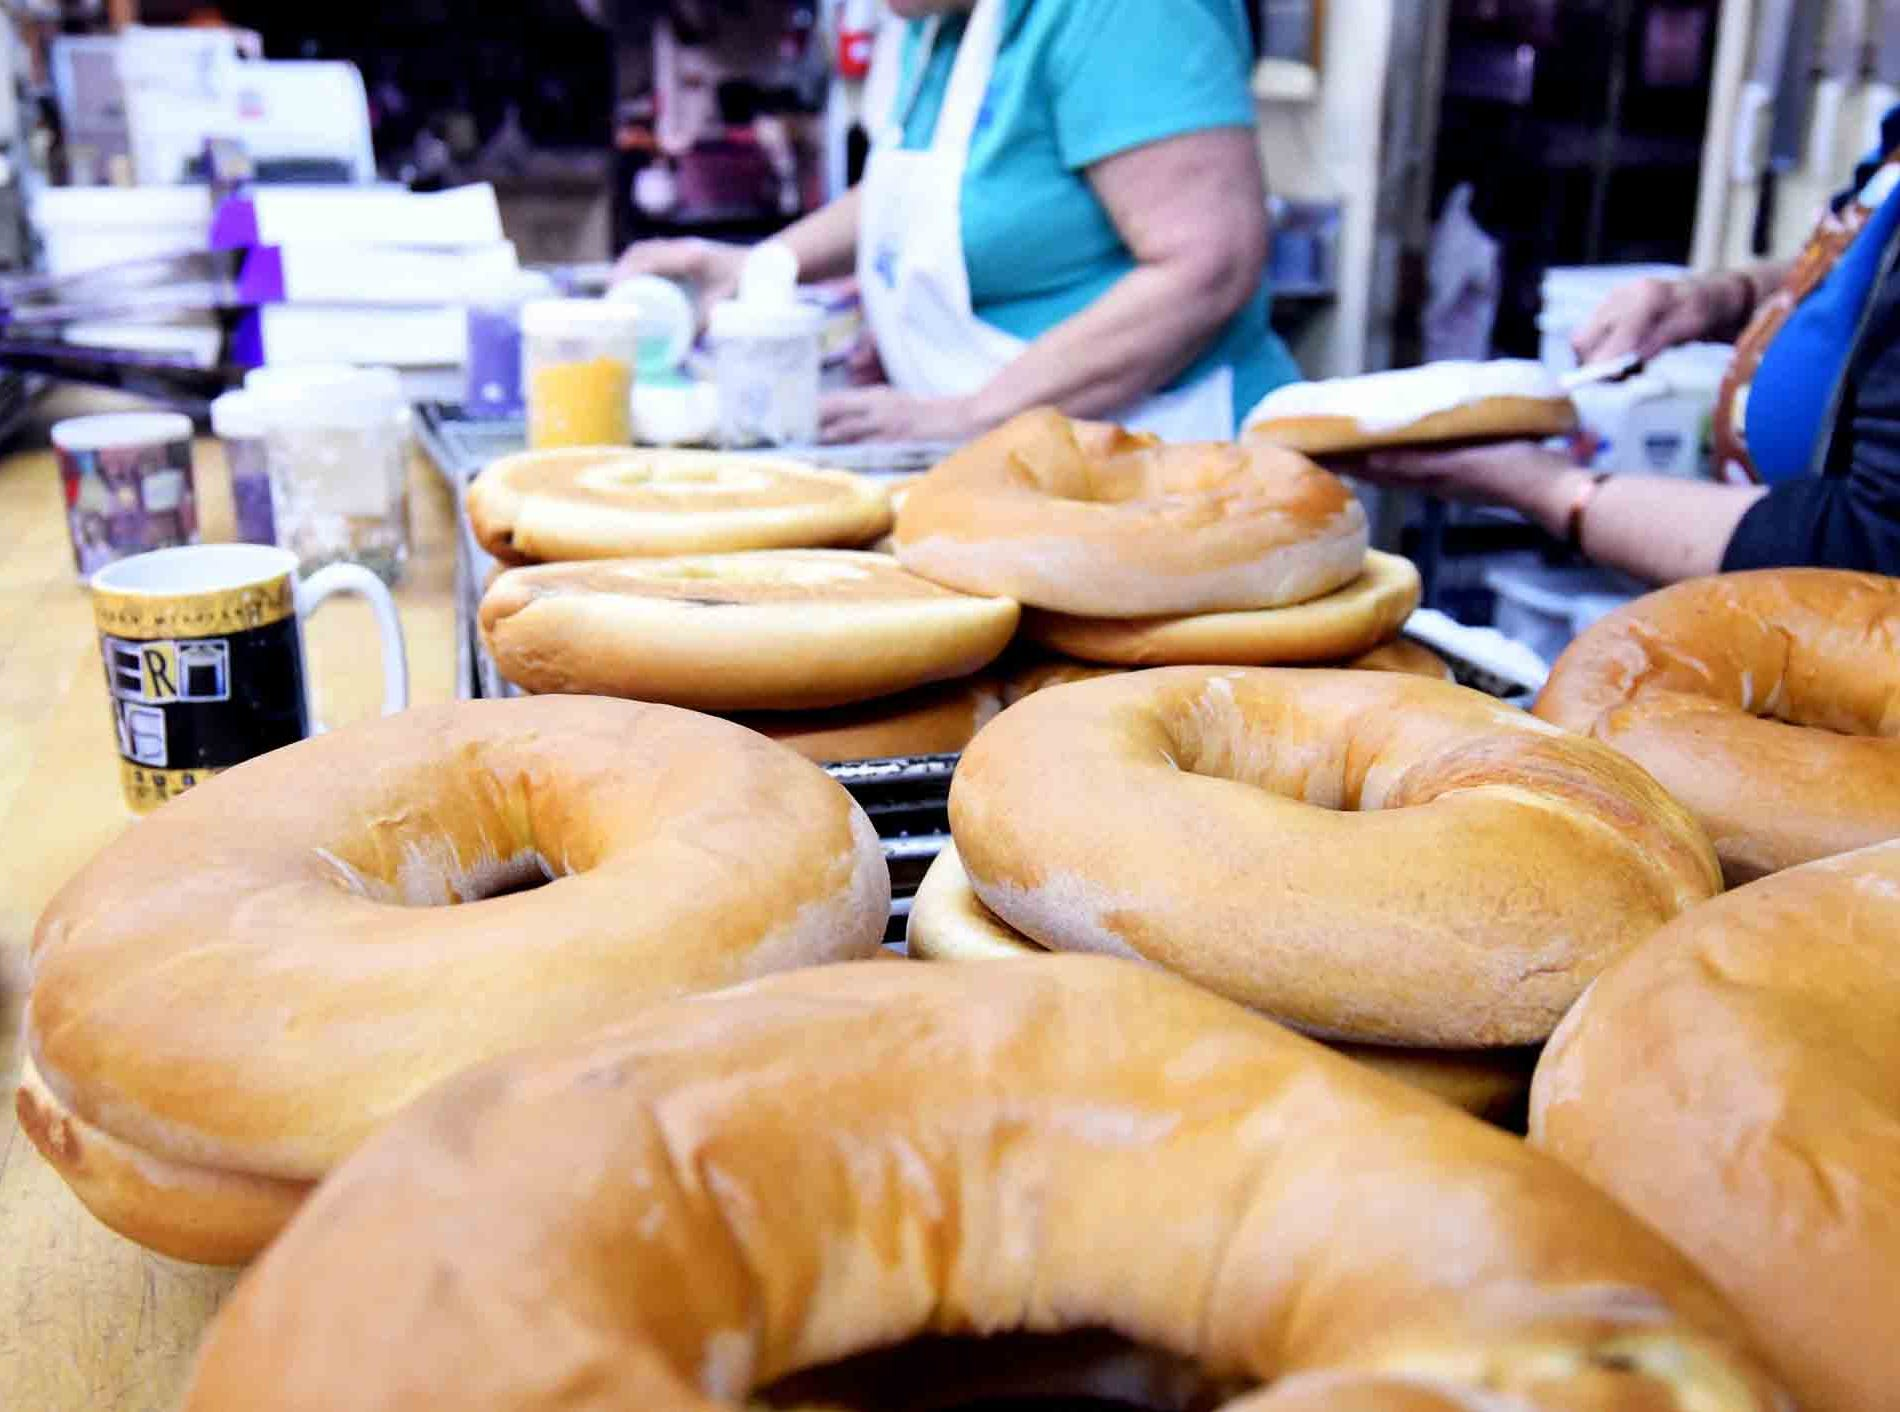 Fresh baked dough waits to be iced as king cakes at Jody's Bakery in Hattiesburg. The bakery provides around 15 different flavors of king cakes. They can be found at Keith's Superstore, Strick's BBQ and Pier 98.